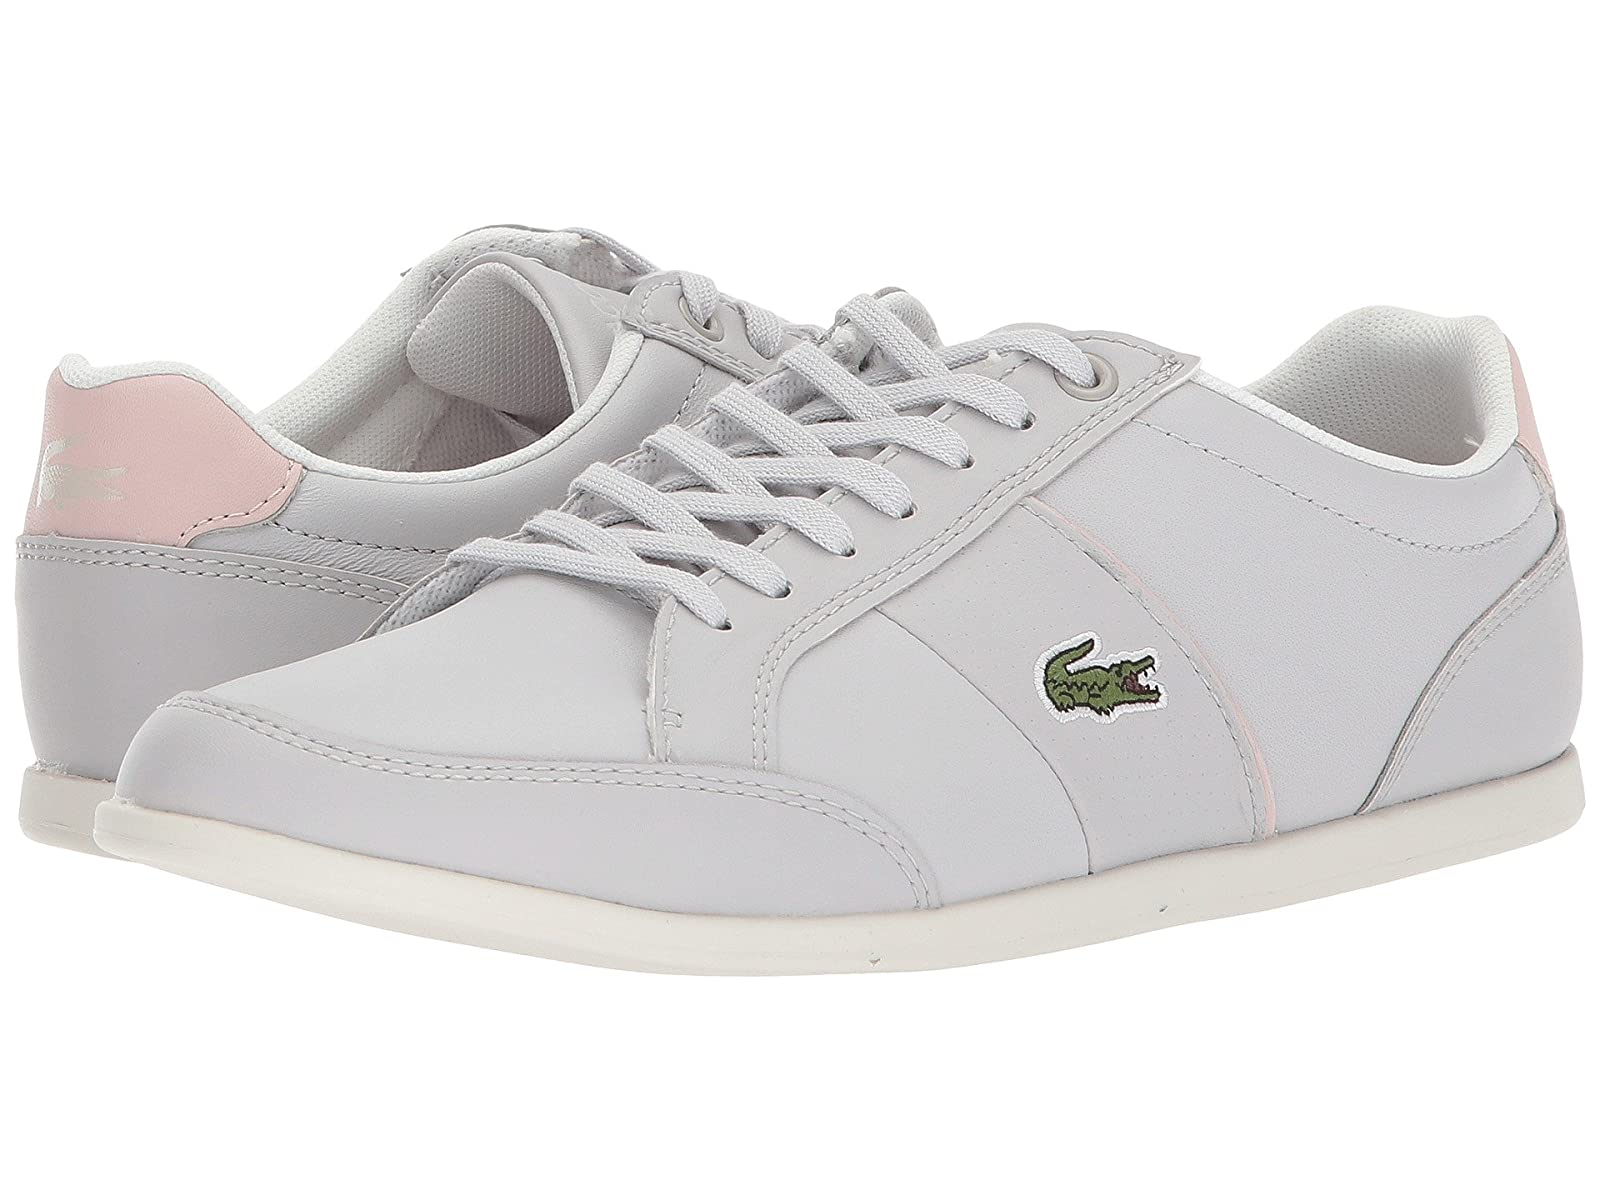 Lacoste SeforraCheap and distinctive eye-catching shoes